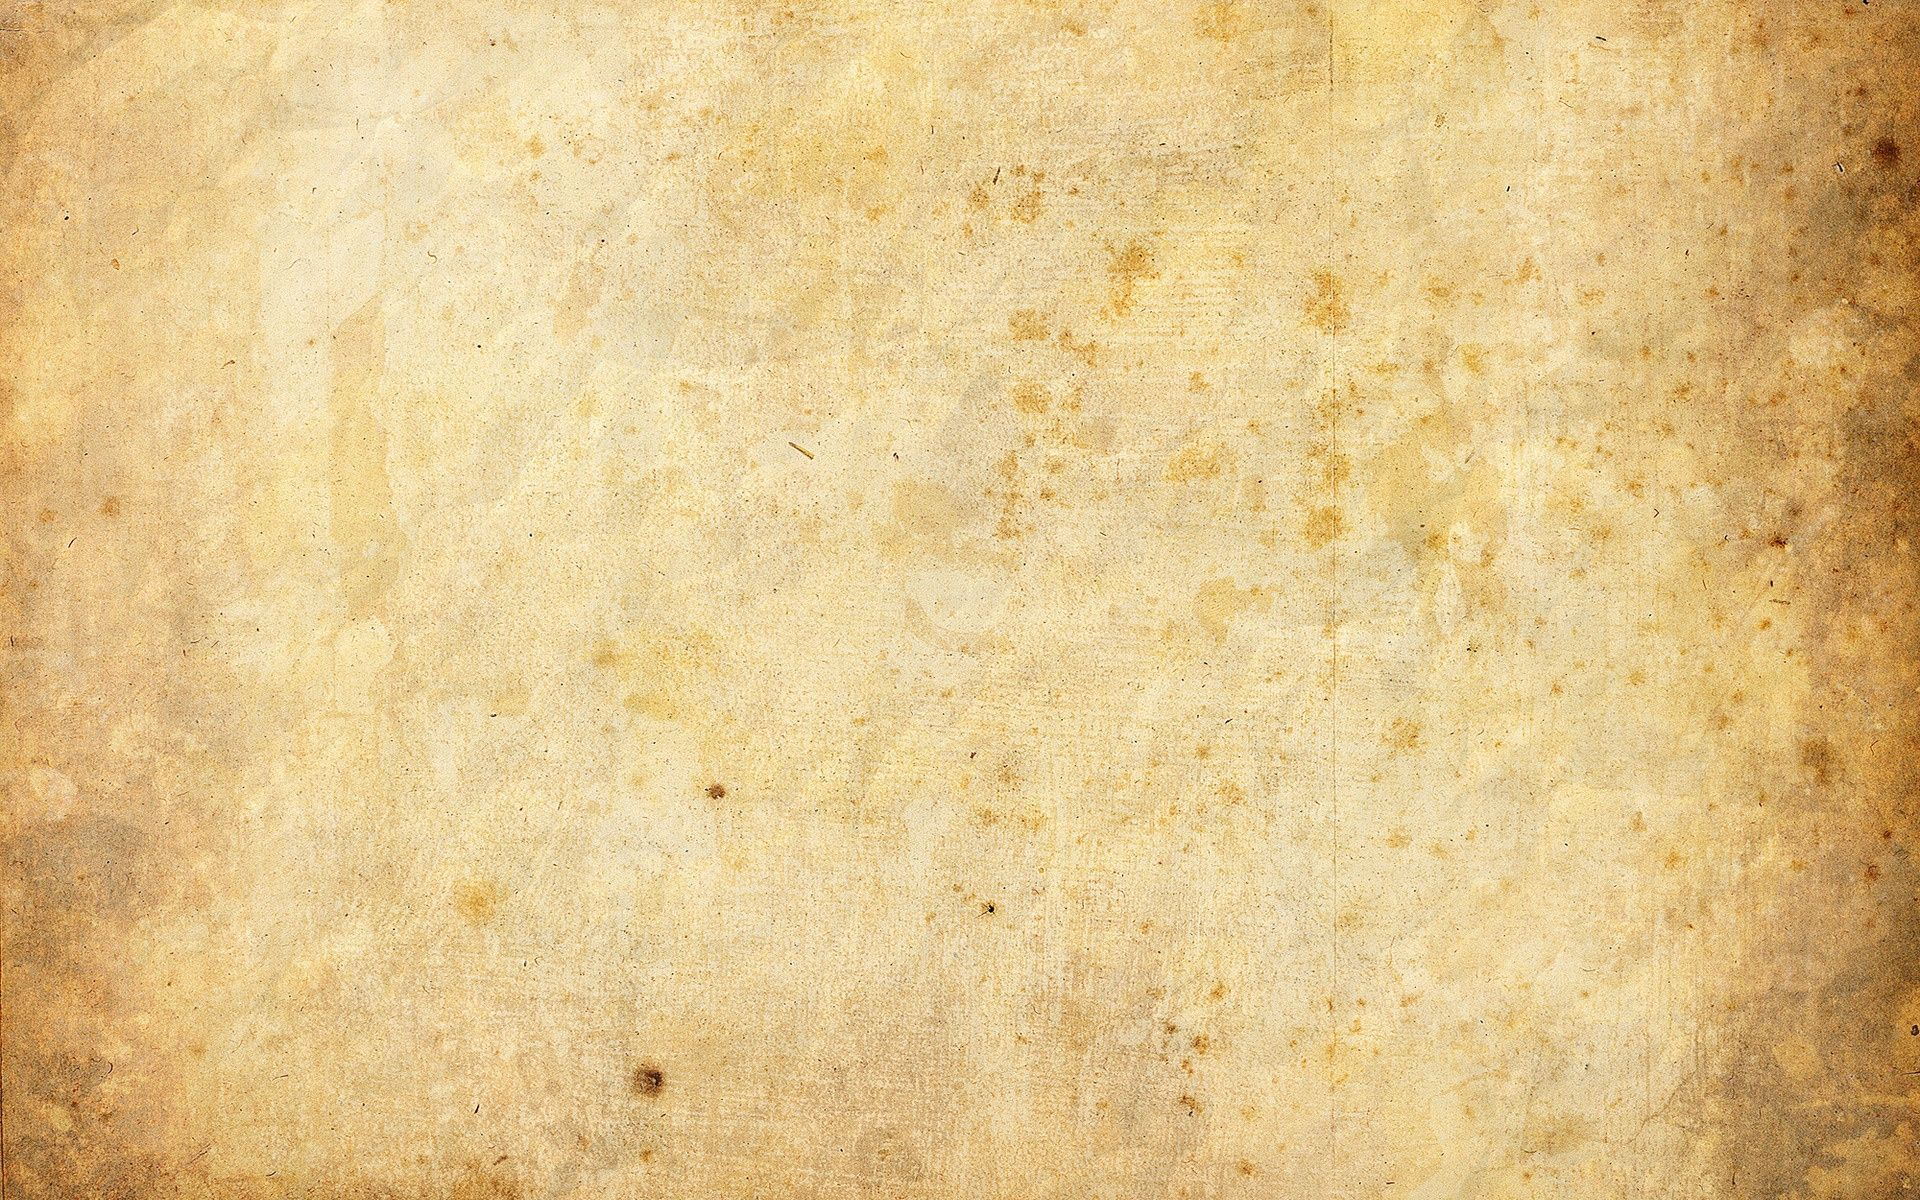 Simple Vintage Backgrounds 17271 Old Paper Background Paper Texture Wallpaper Old Paper